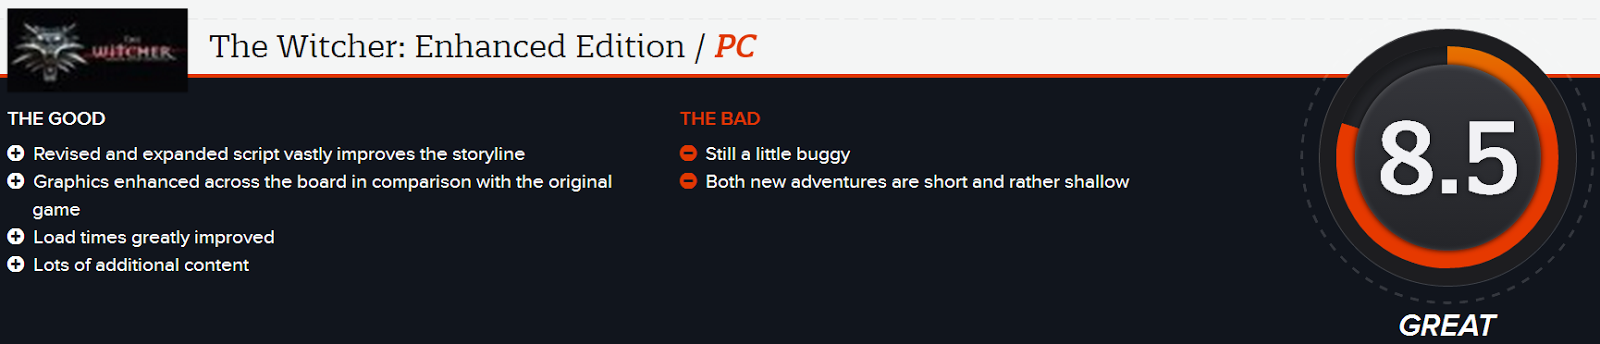 The Witcher Enhanced Edition PC Game Rating